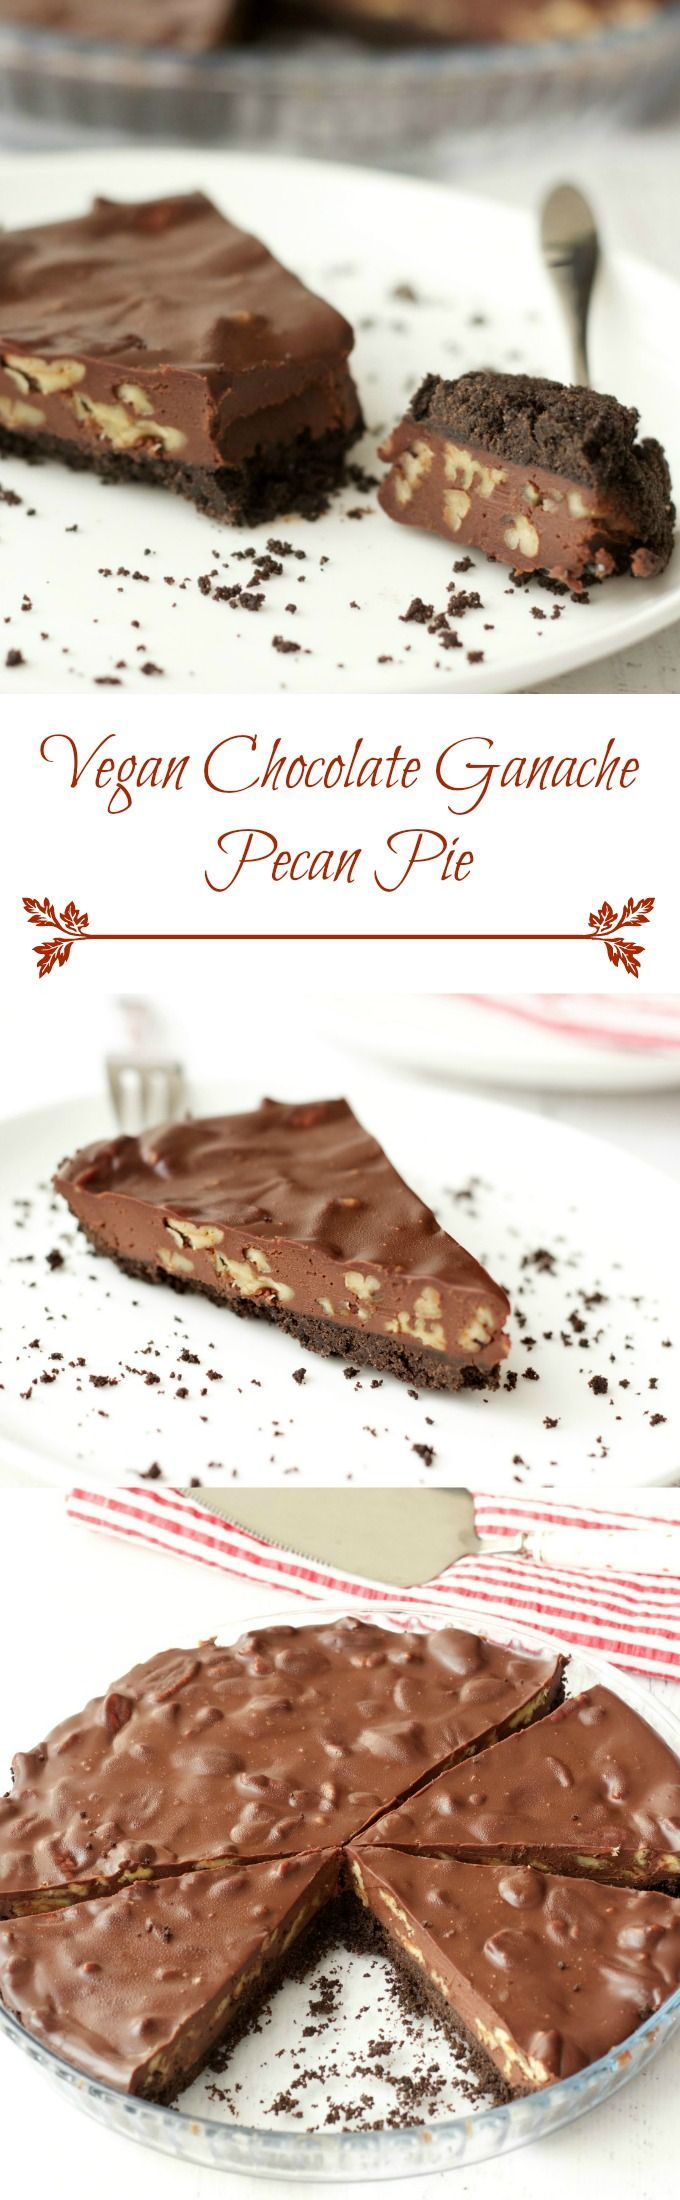 Vegan Chocolate Ganache Pecan Pie